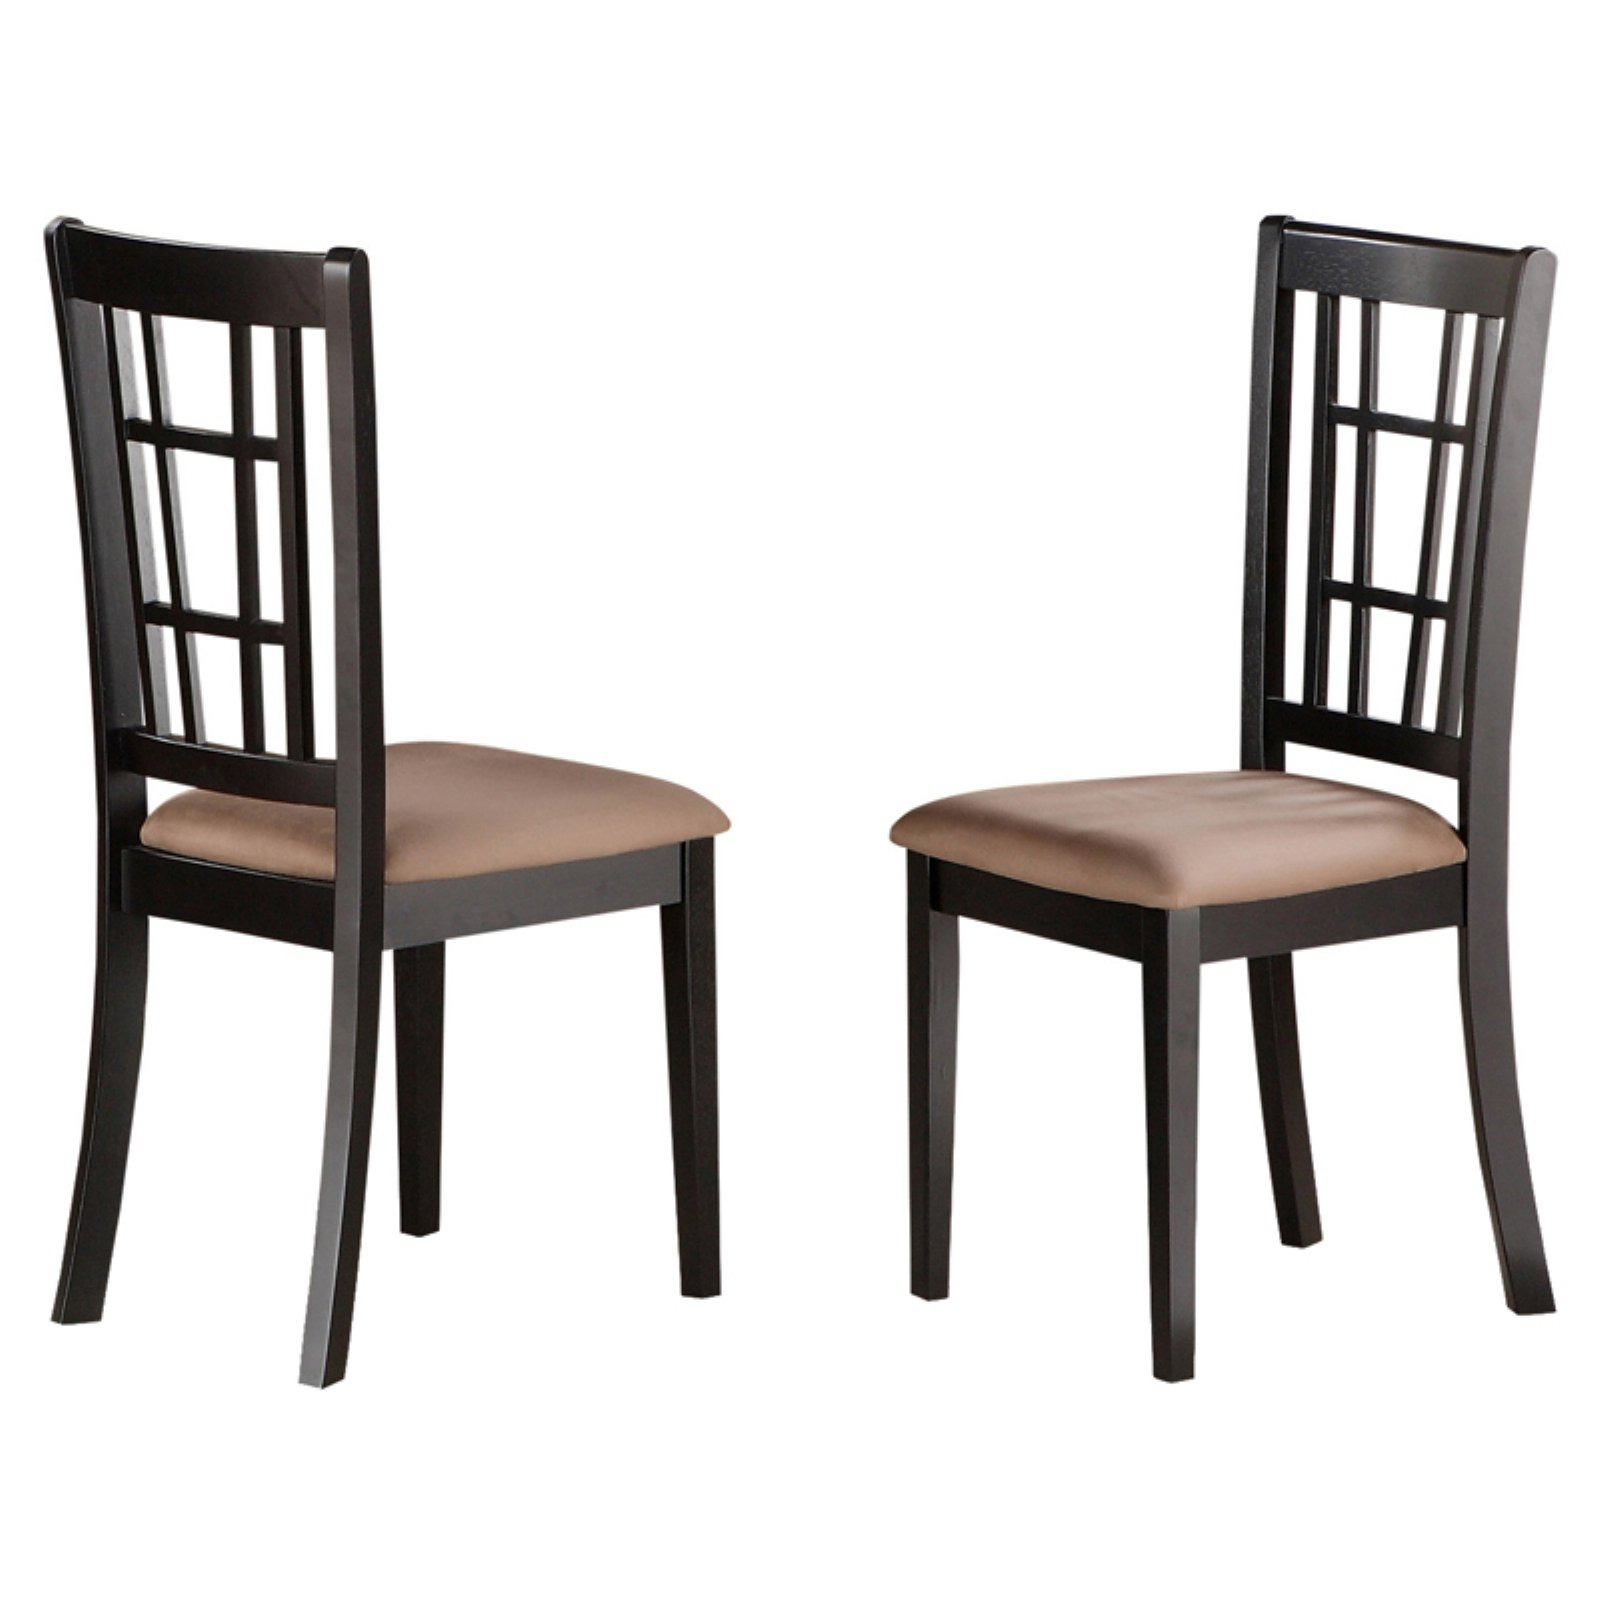 East West Furniture Nicoli Dining Chair with Microfiber Seat - Set of 2